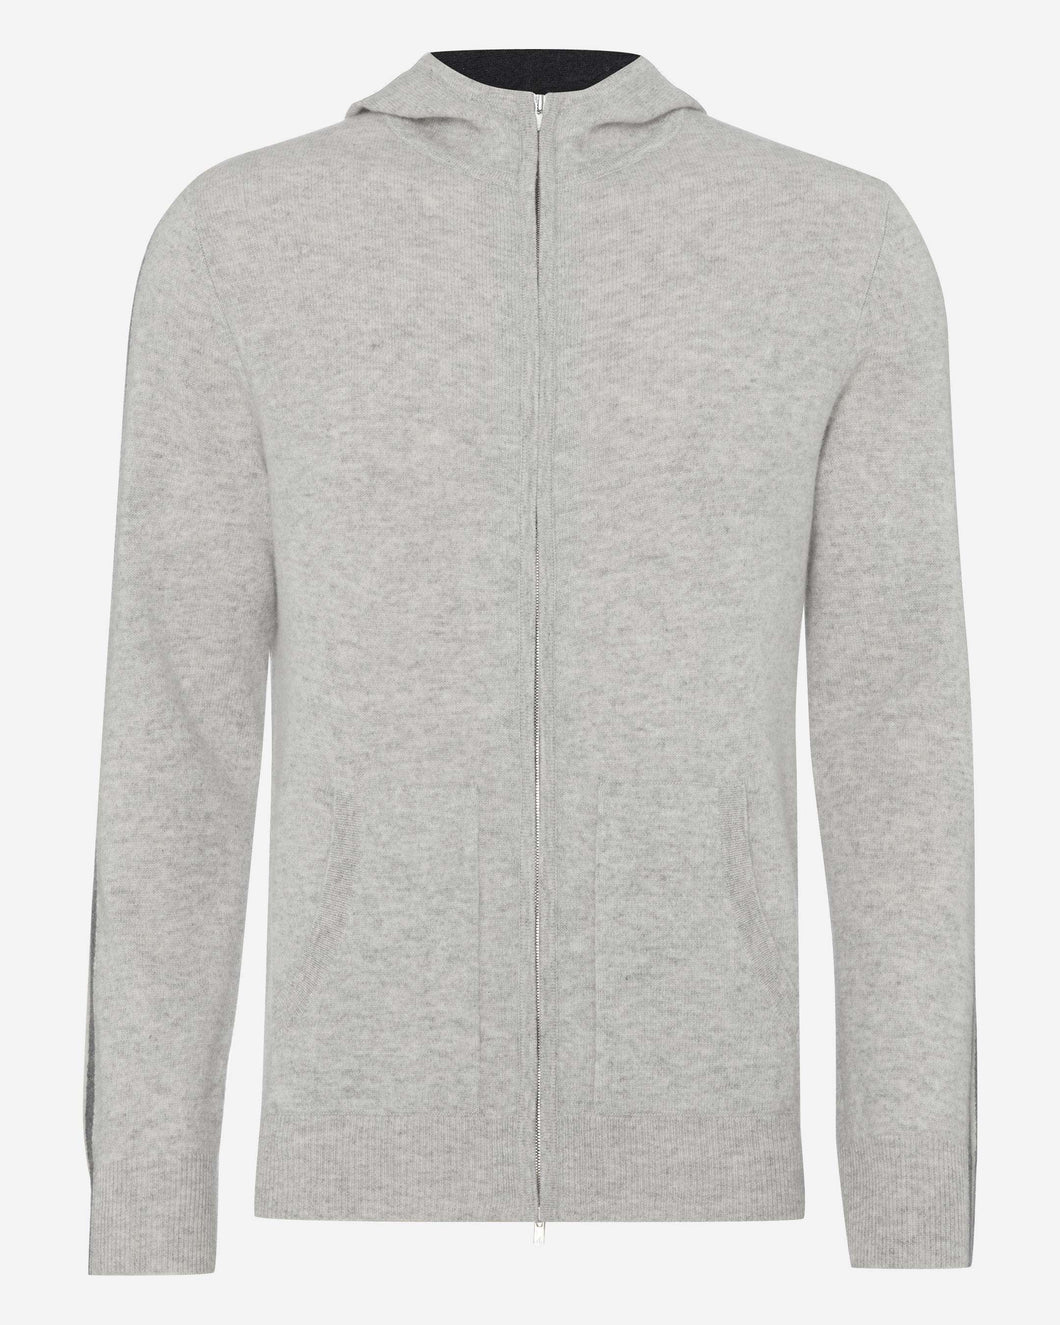 Stripe Detail Cashmere Hoodie Fumo Grey + Ecru White + Dark Charcoal Grey